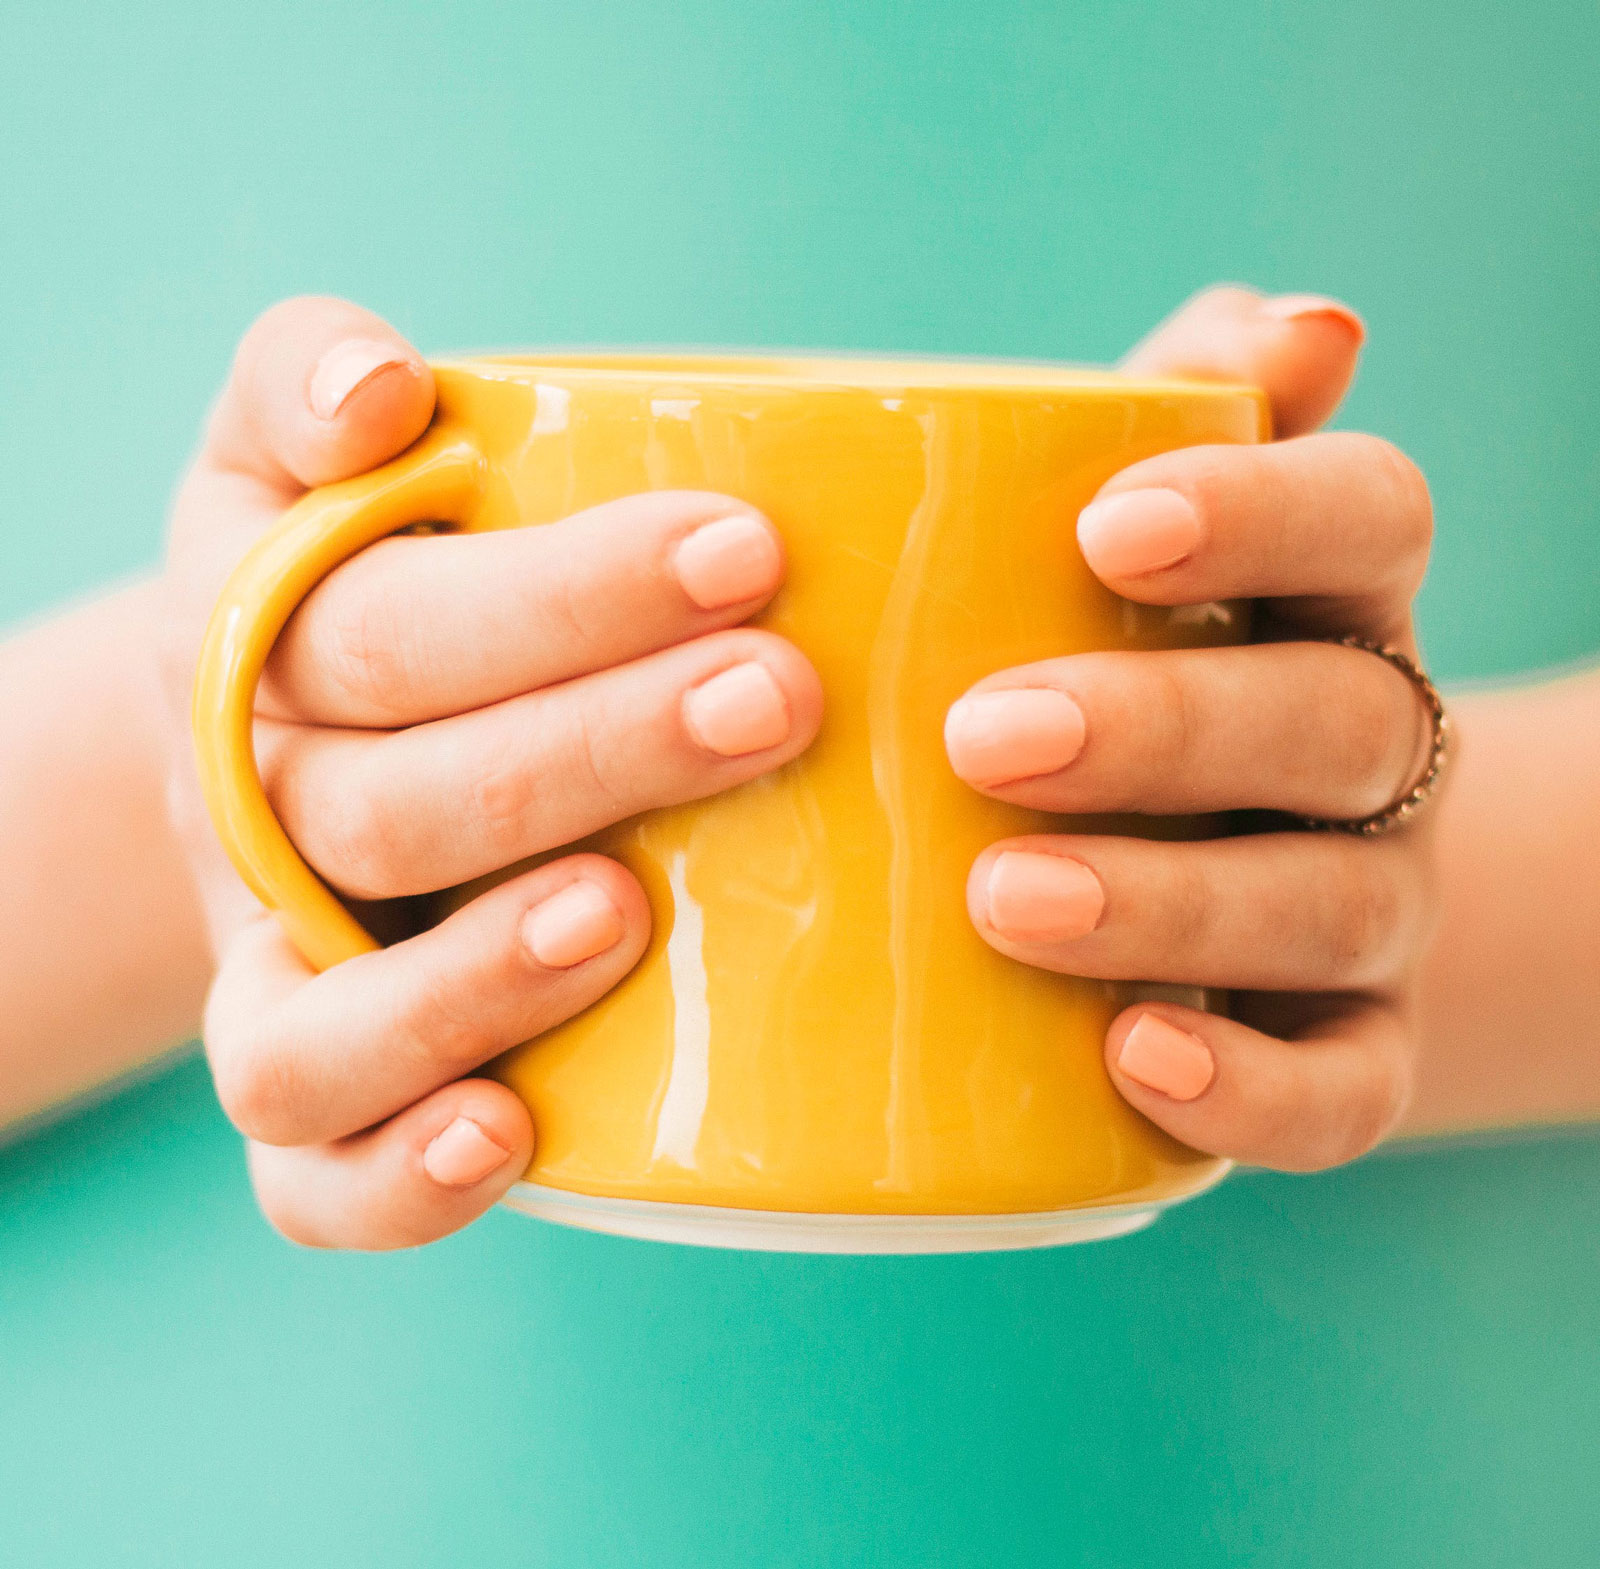 Man Holding a Cup | The Definitive Rules For Putting Milk In Tea